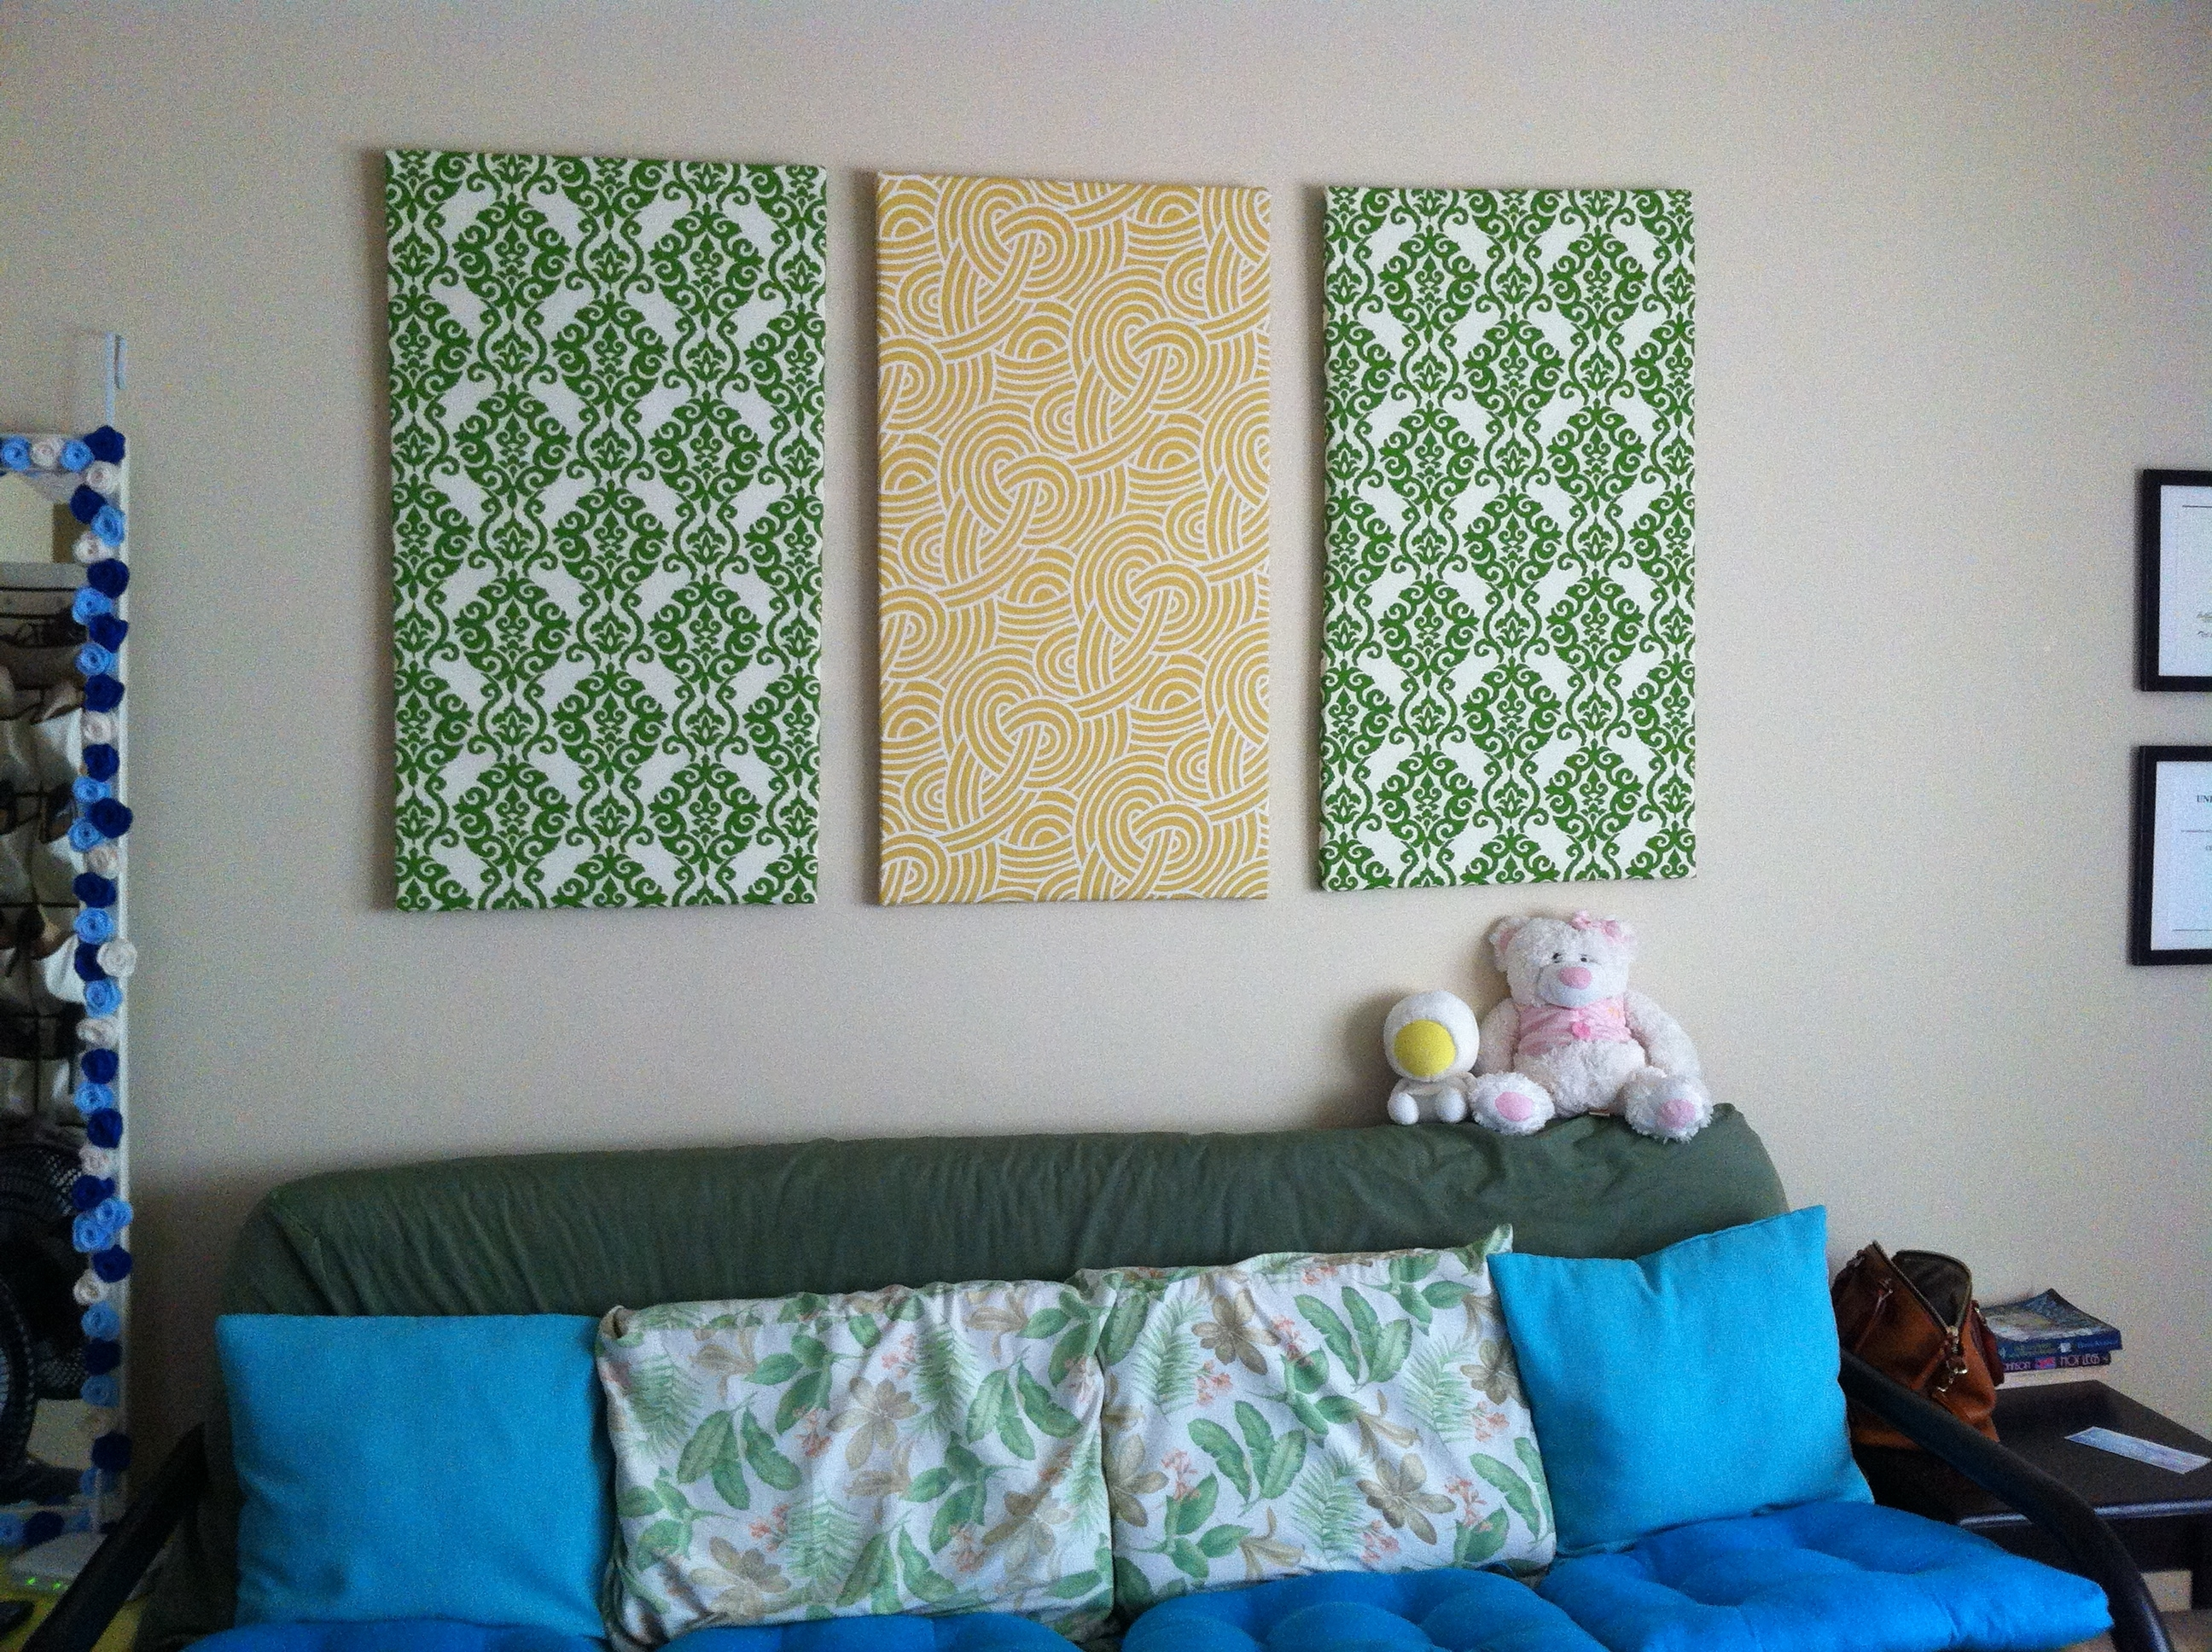 Wall Art Design: Fabric Wall Art Diy Unique Design Collection Art With Most Current Fabric For Wall Art Hangings (View 11 of 15)